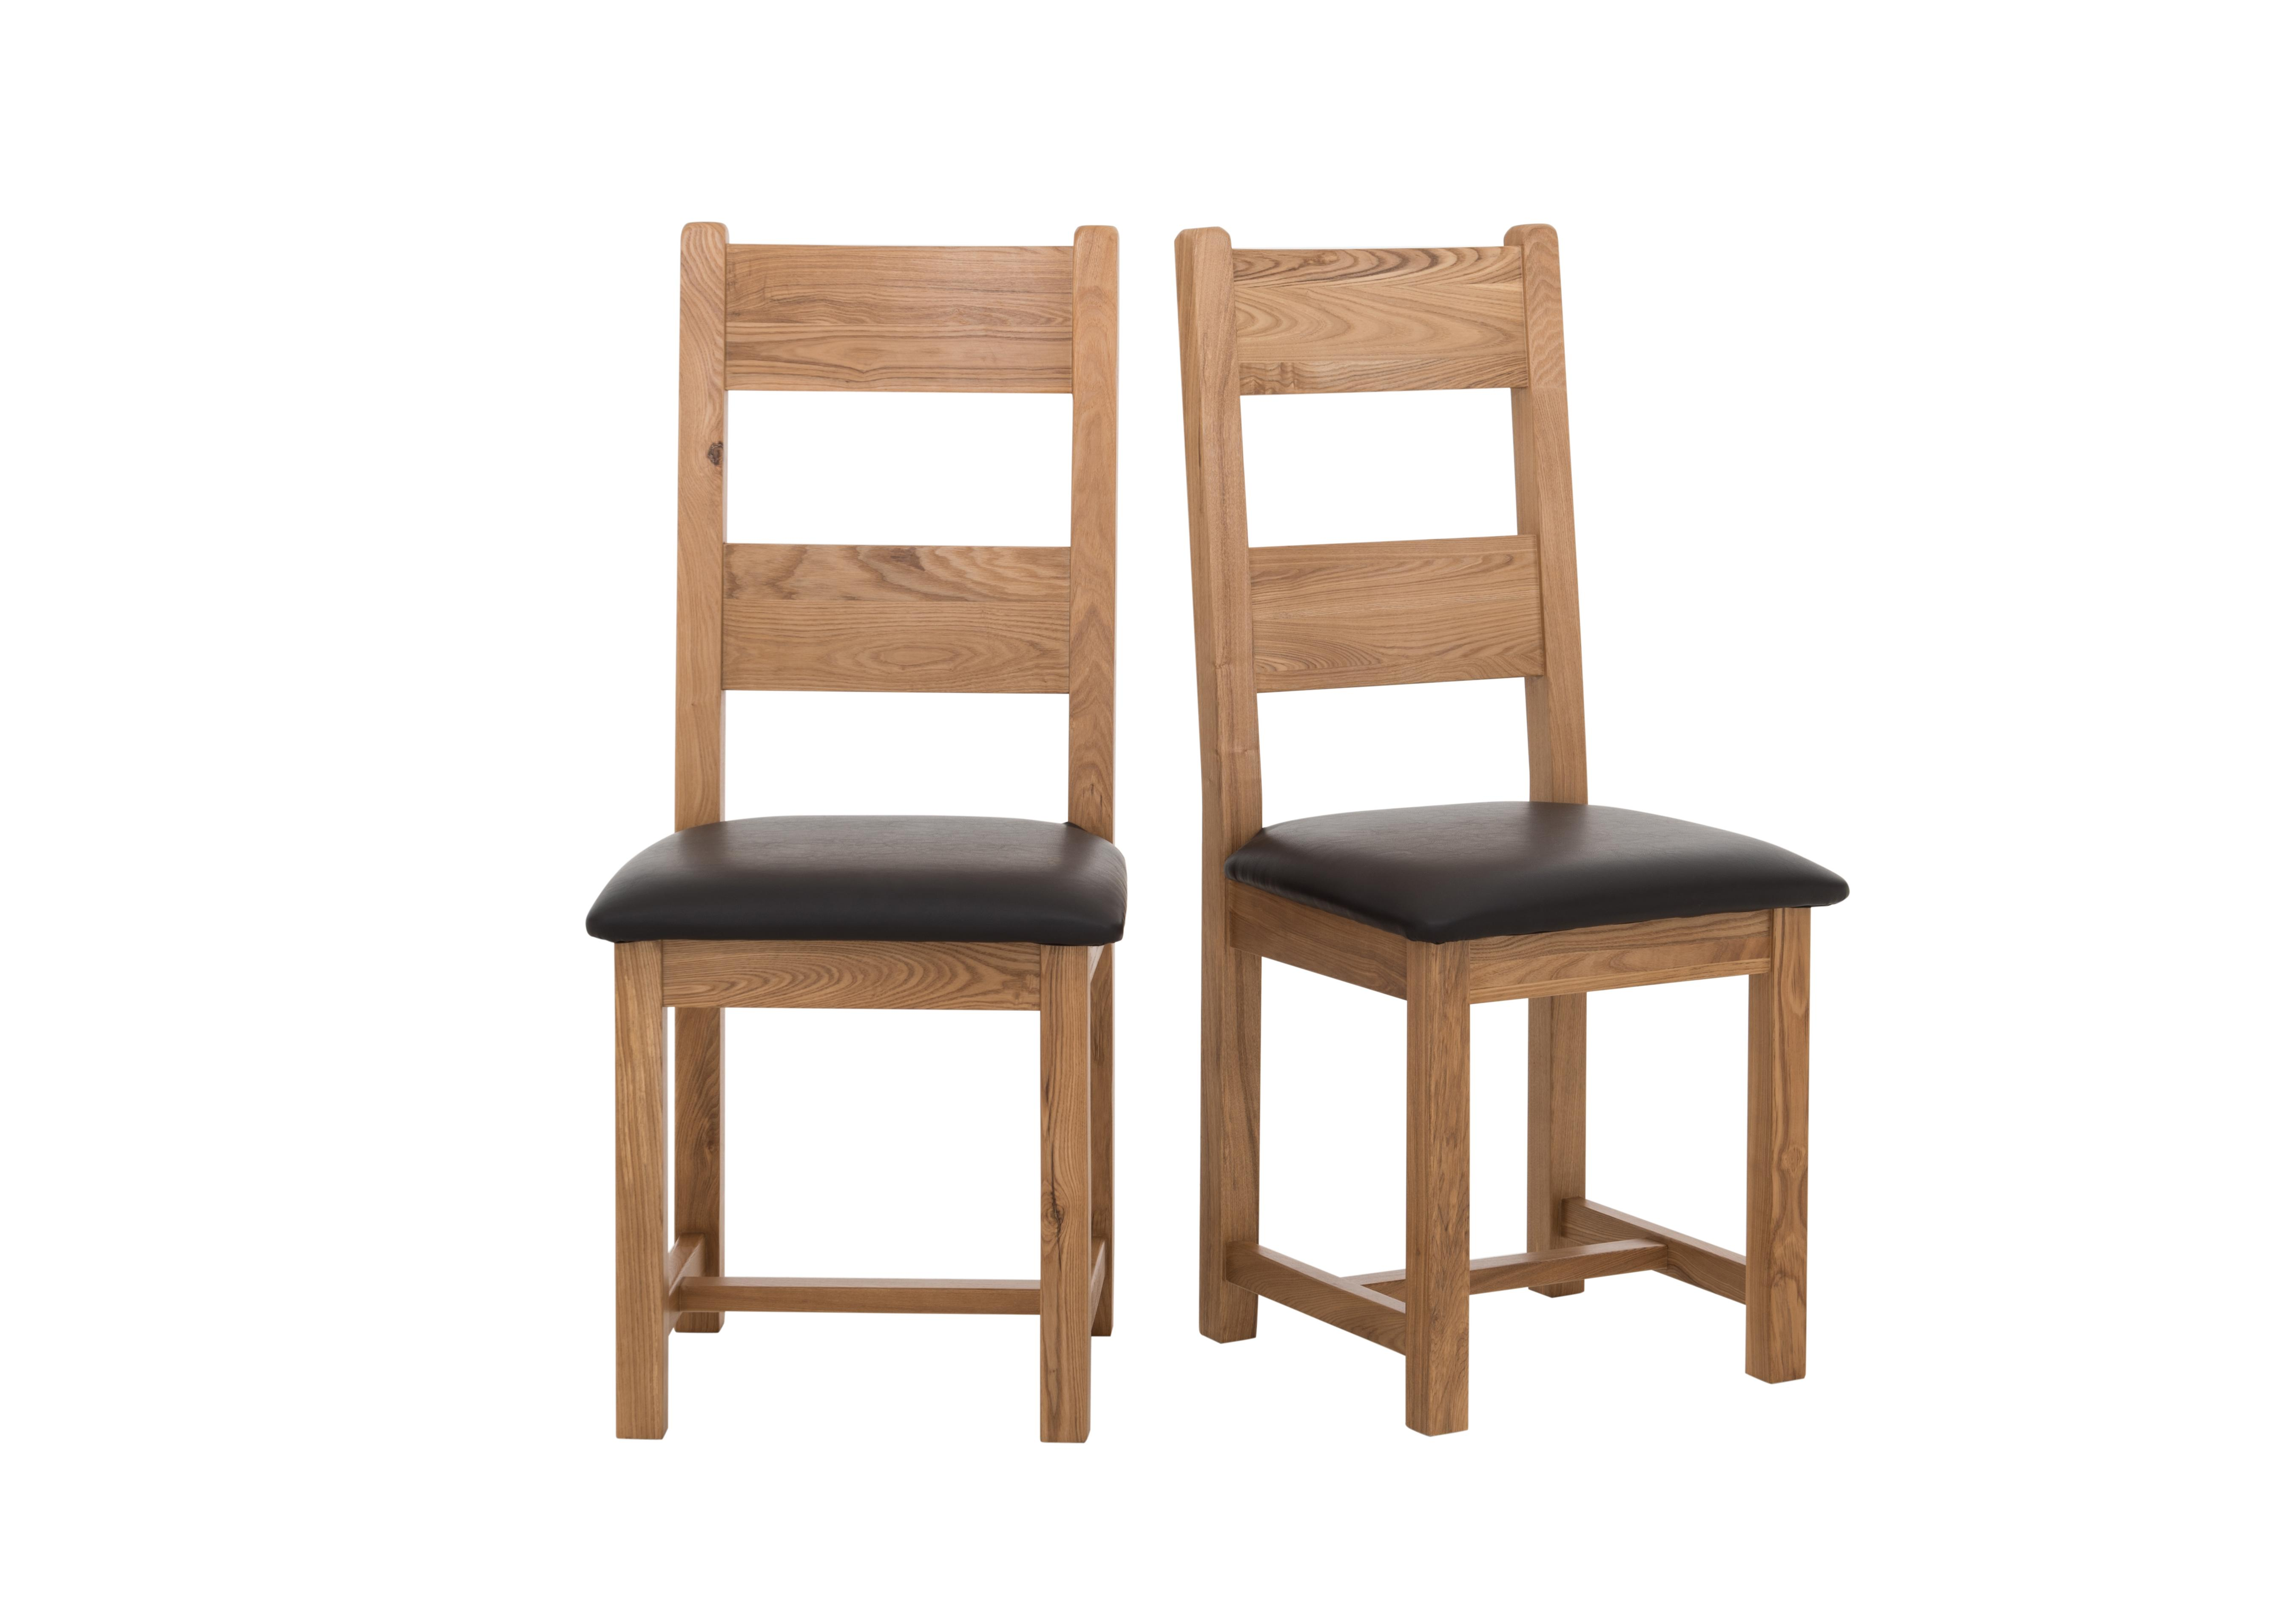 wooden chairs pictures office chair top view dining furniture village extra 25 off limited stock available